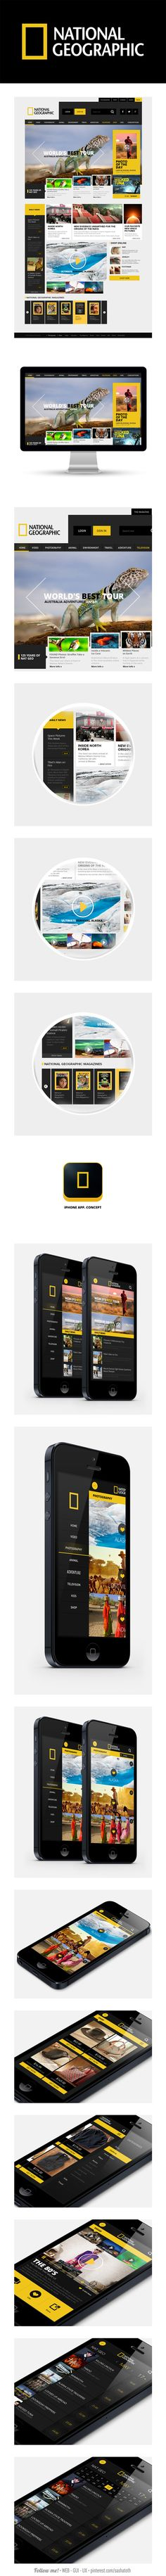 National Geographic Redesign web and iphone app re-design by Enes Danış, via Behance *** #iphone #app #gui #web #nationalgeographic